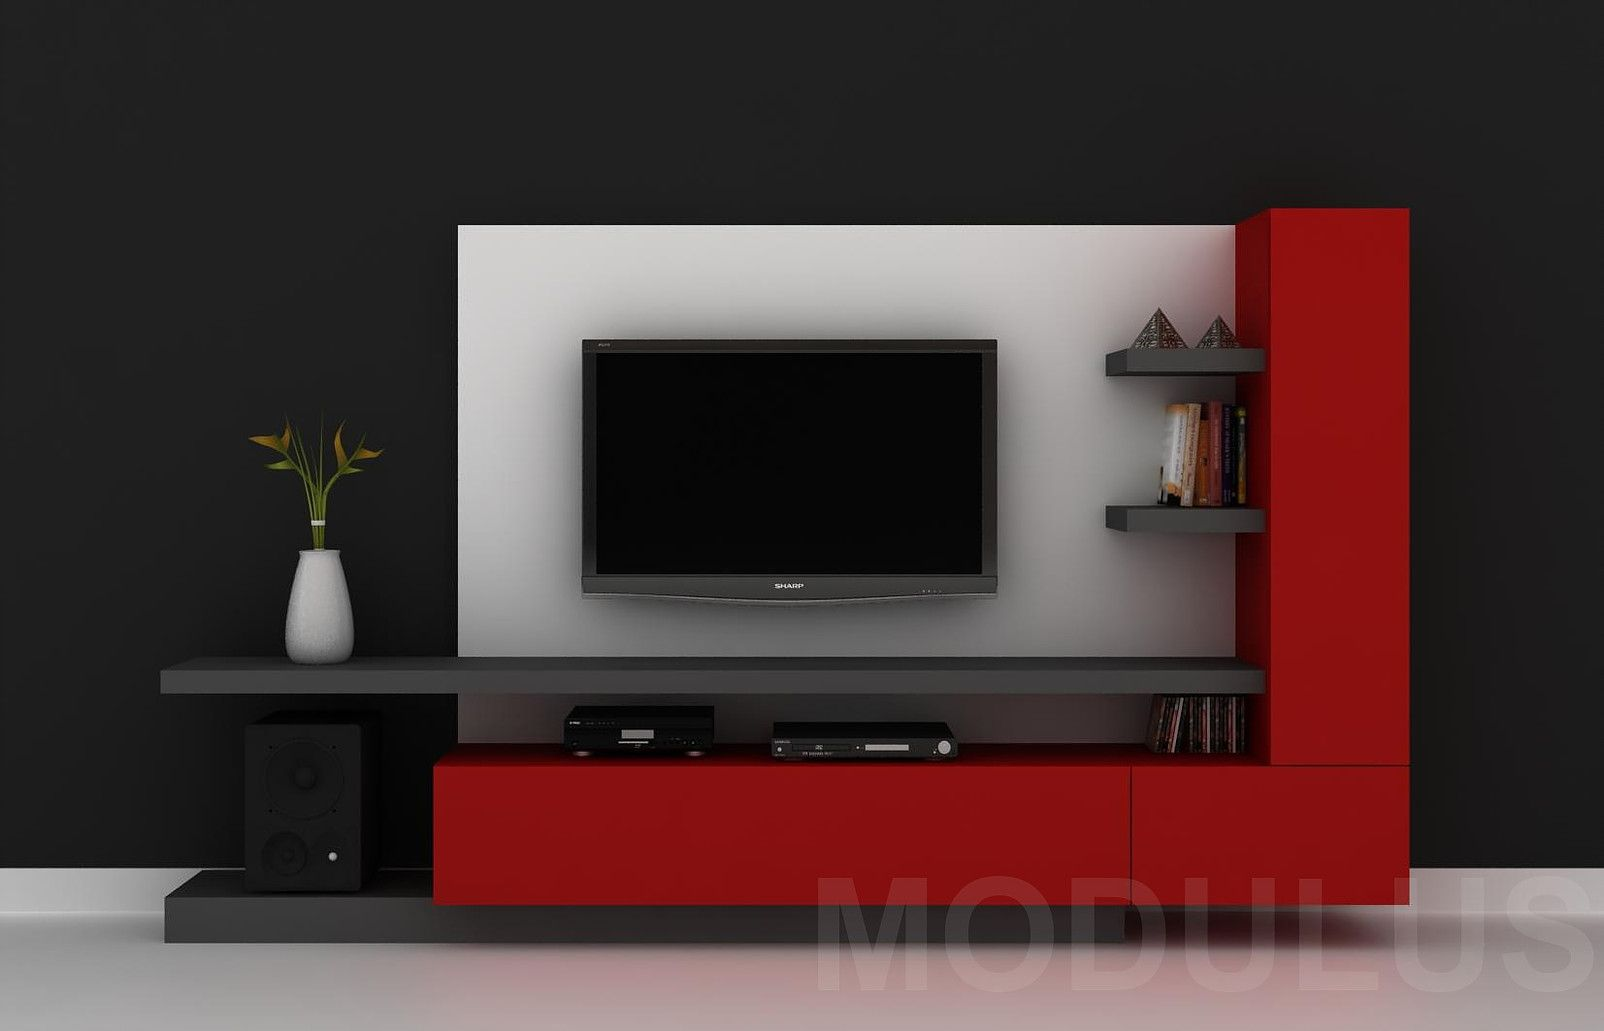 Modulares para living tv lcd led wall unit muebles for Muebles para tv modernos